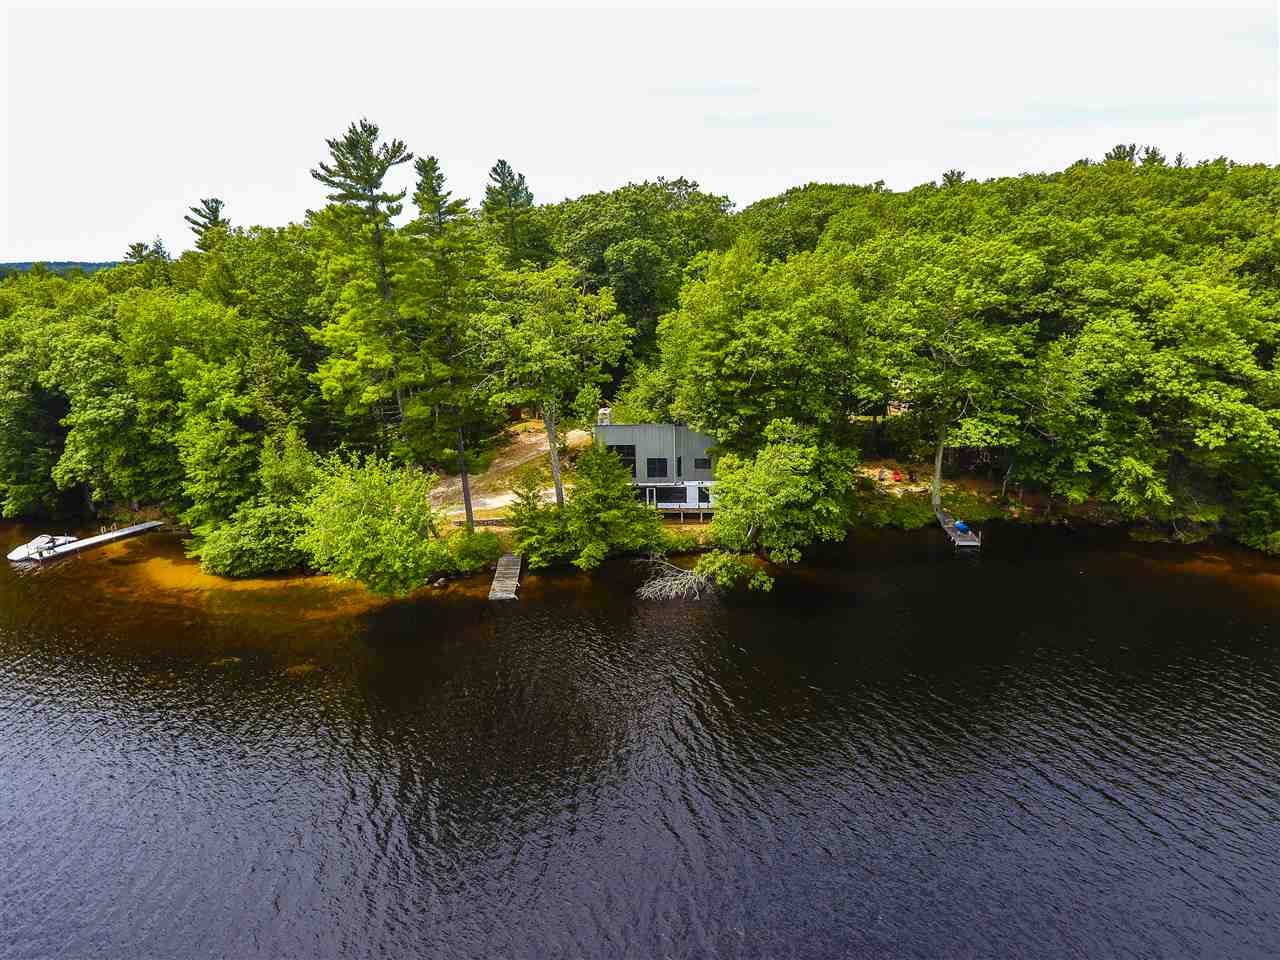 Residential Homes And Real Estate For Sale In Weare Nh By